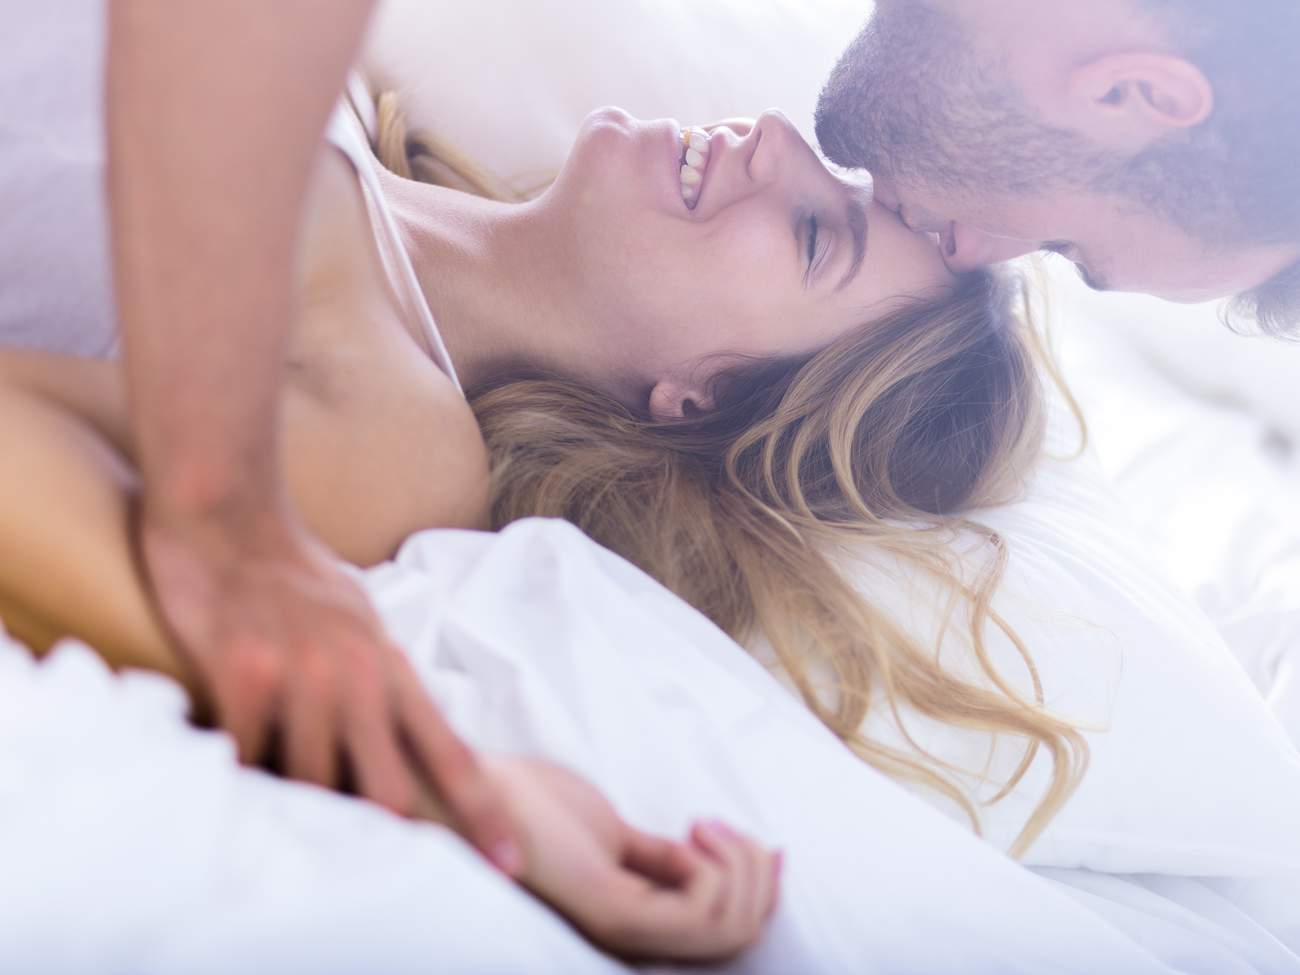 best-orgasms-after-this-age-couple-sex